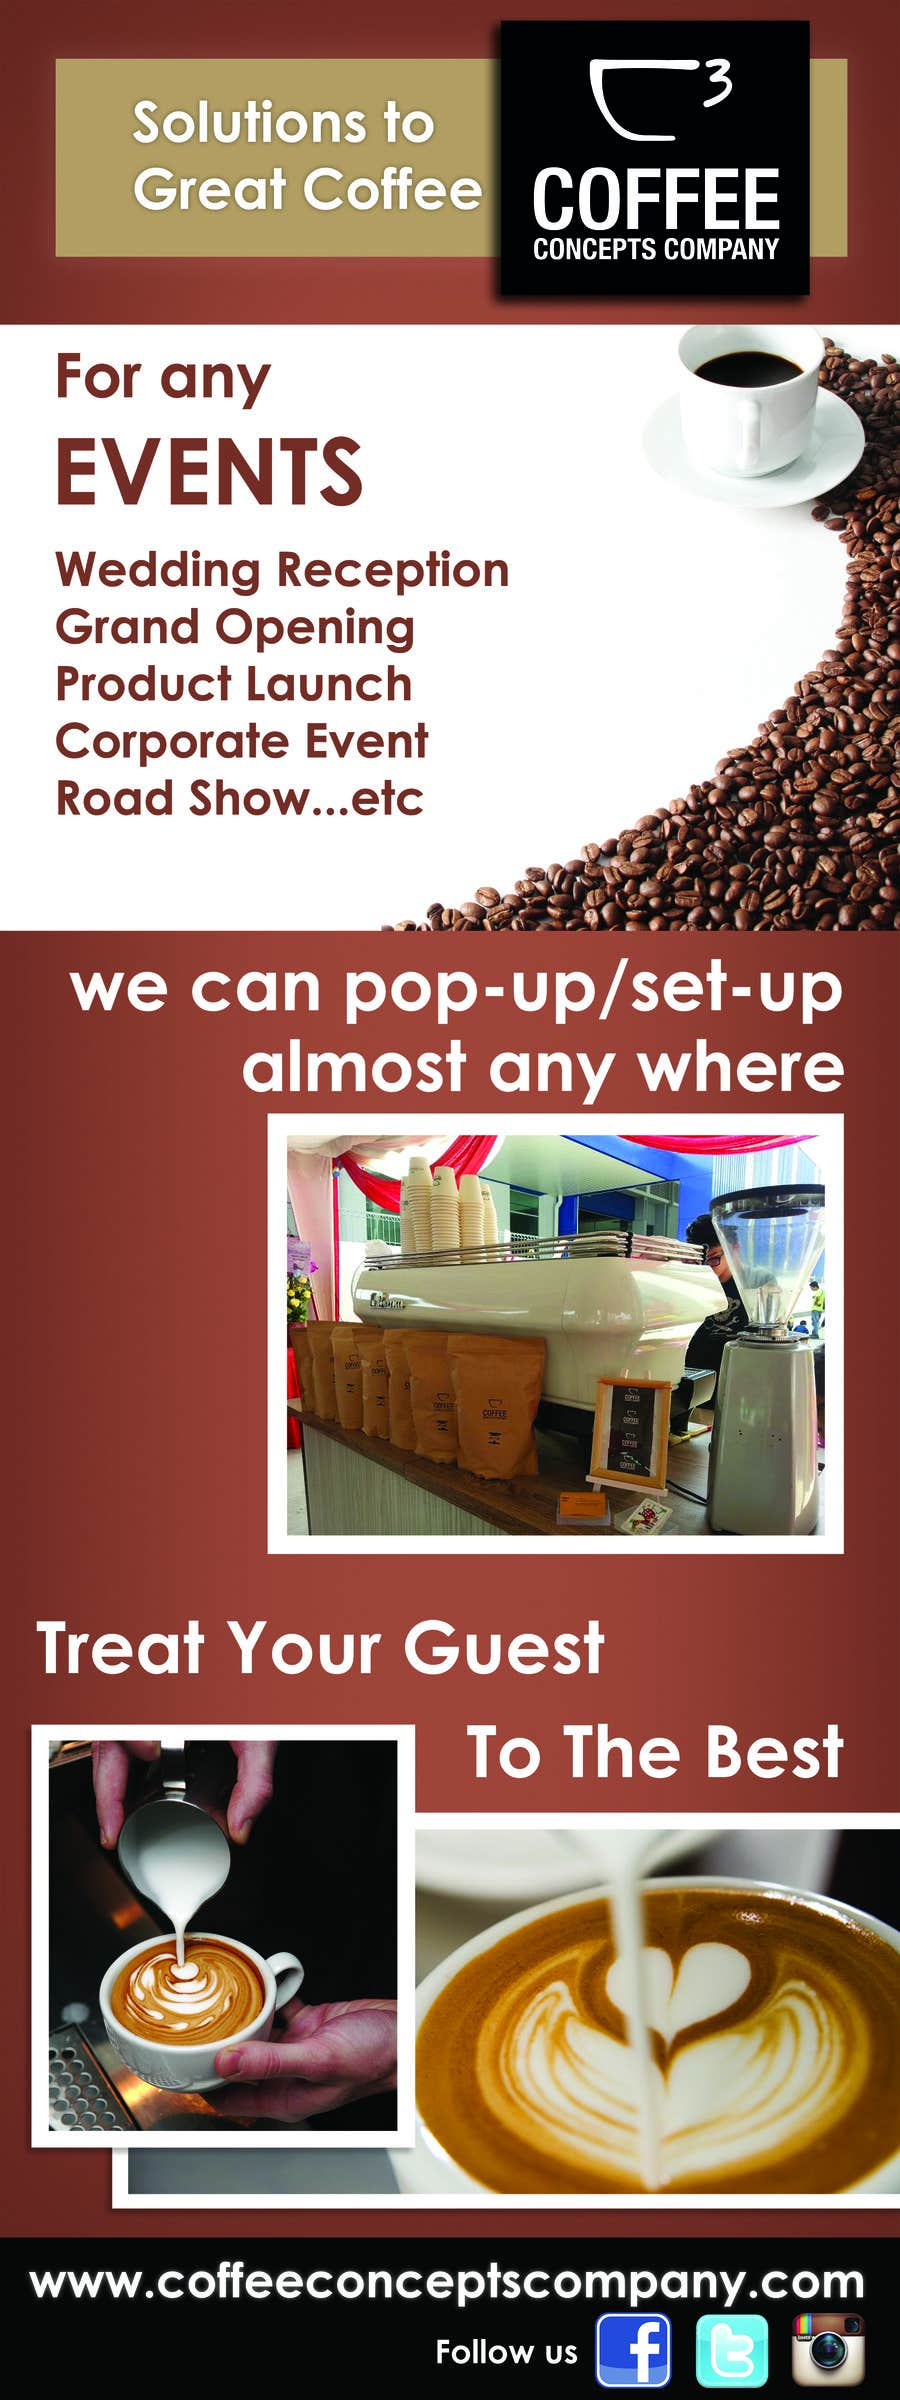 #11 for Design a Pull Up Banner for a Coffee Business by karunrams